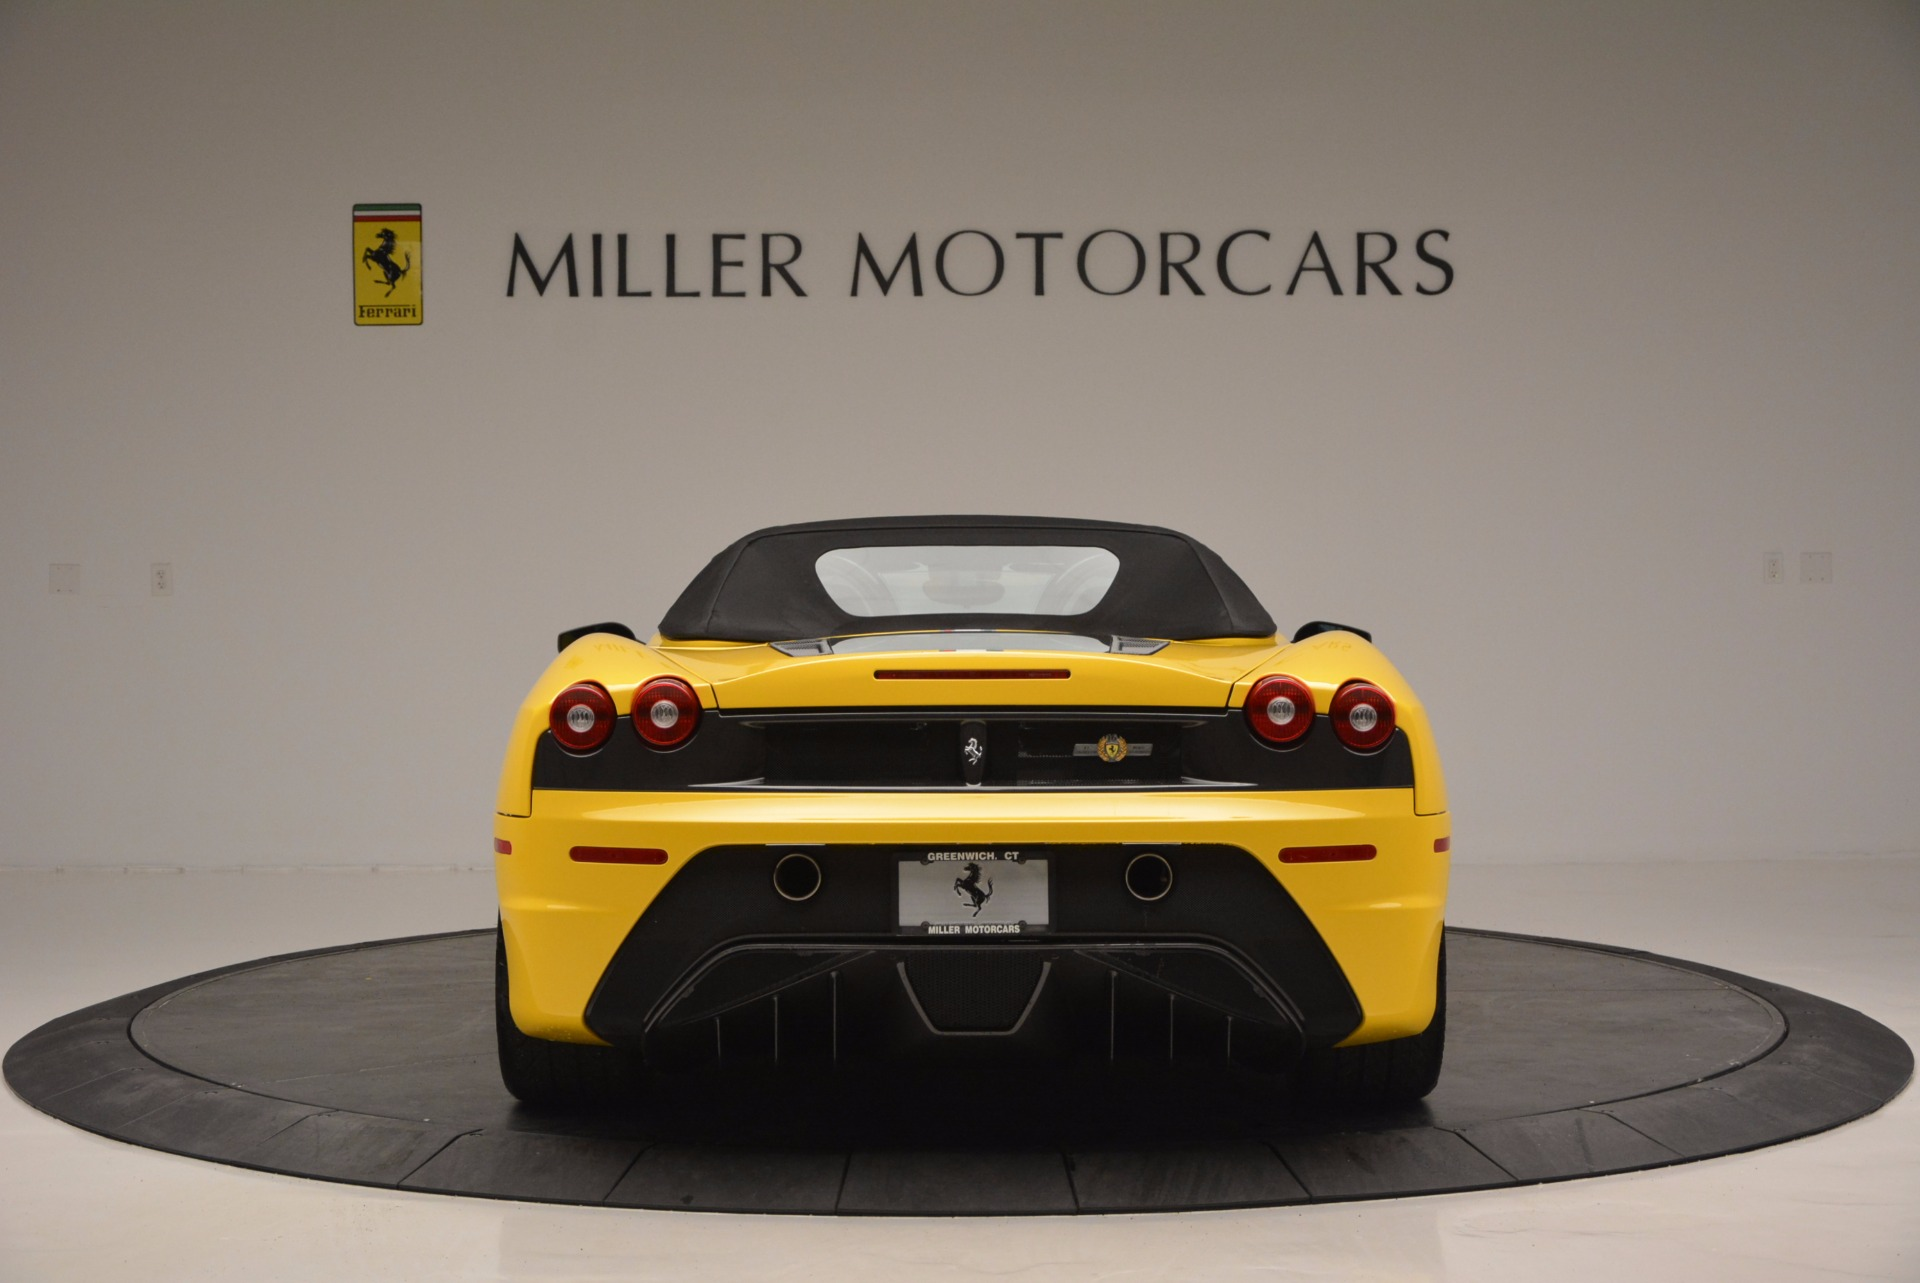 Used 2009 Ferrari F430 Scuderia 16M For Sale In Greenwich, CT 856_p18